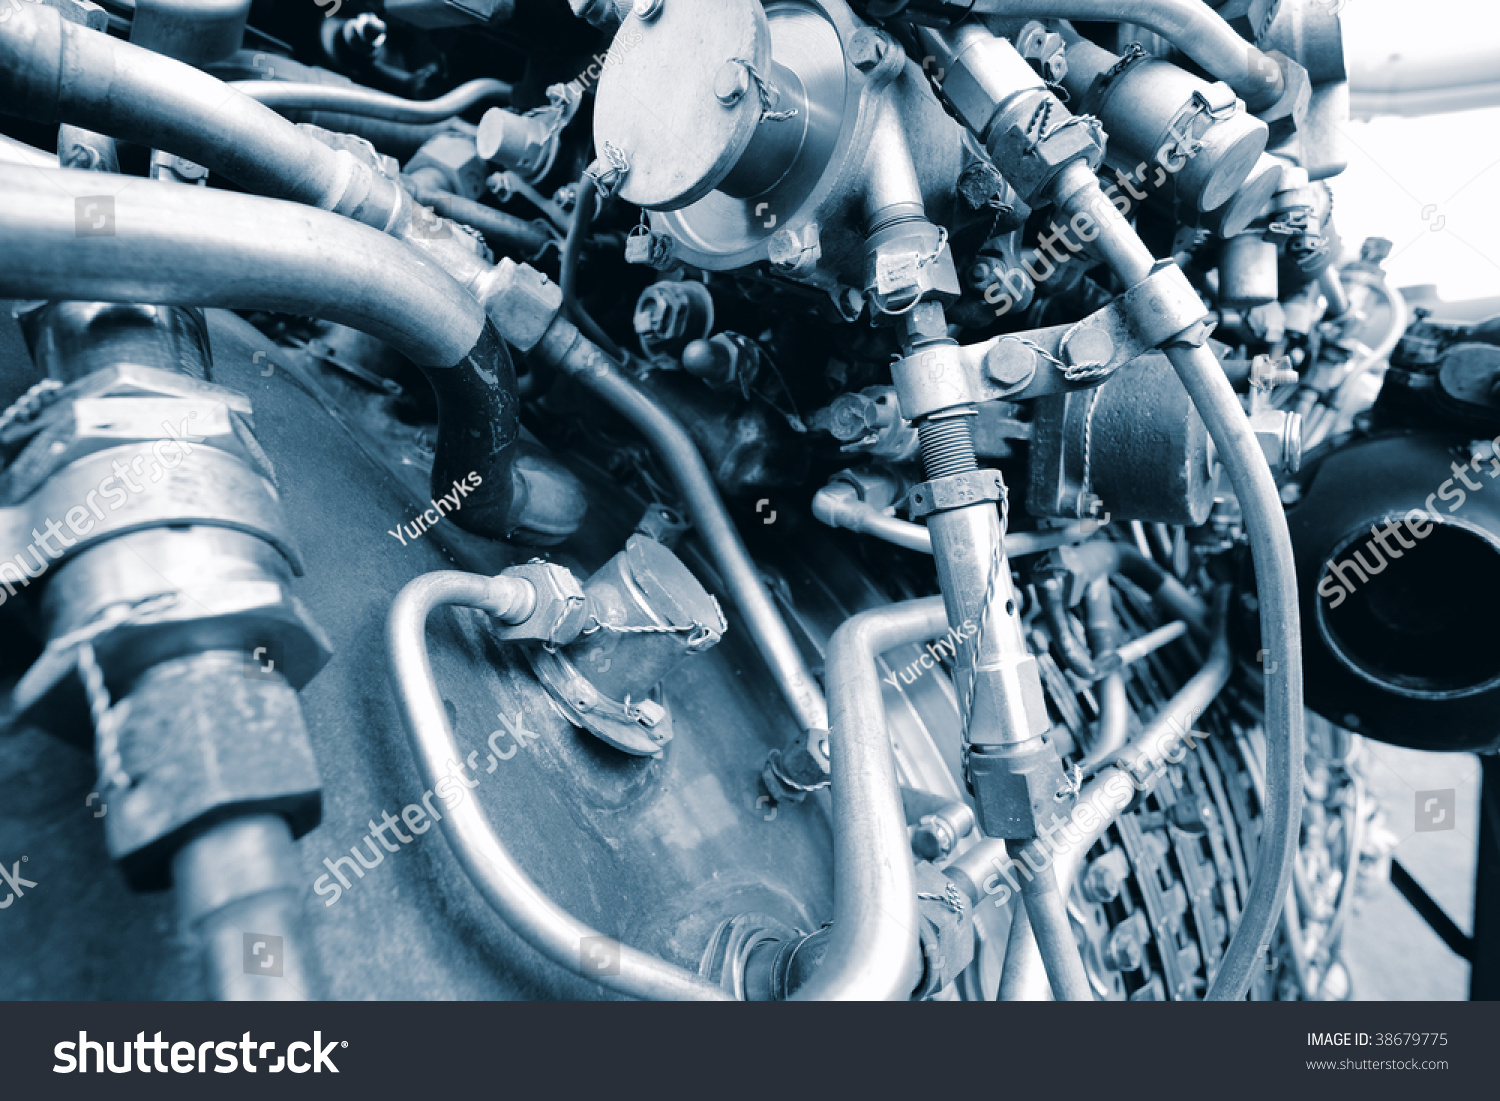 Aircraft Engine Steampunk Looking Structure Stock Photo 38679775 ...